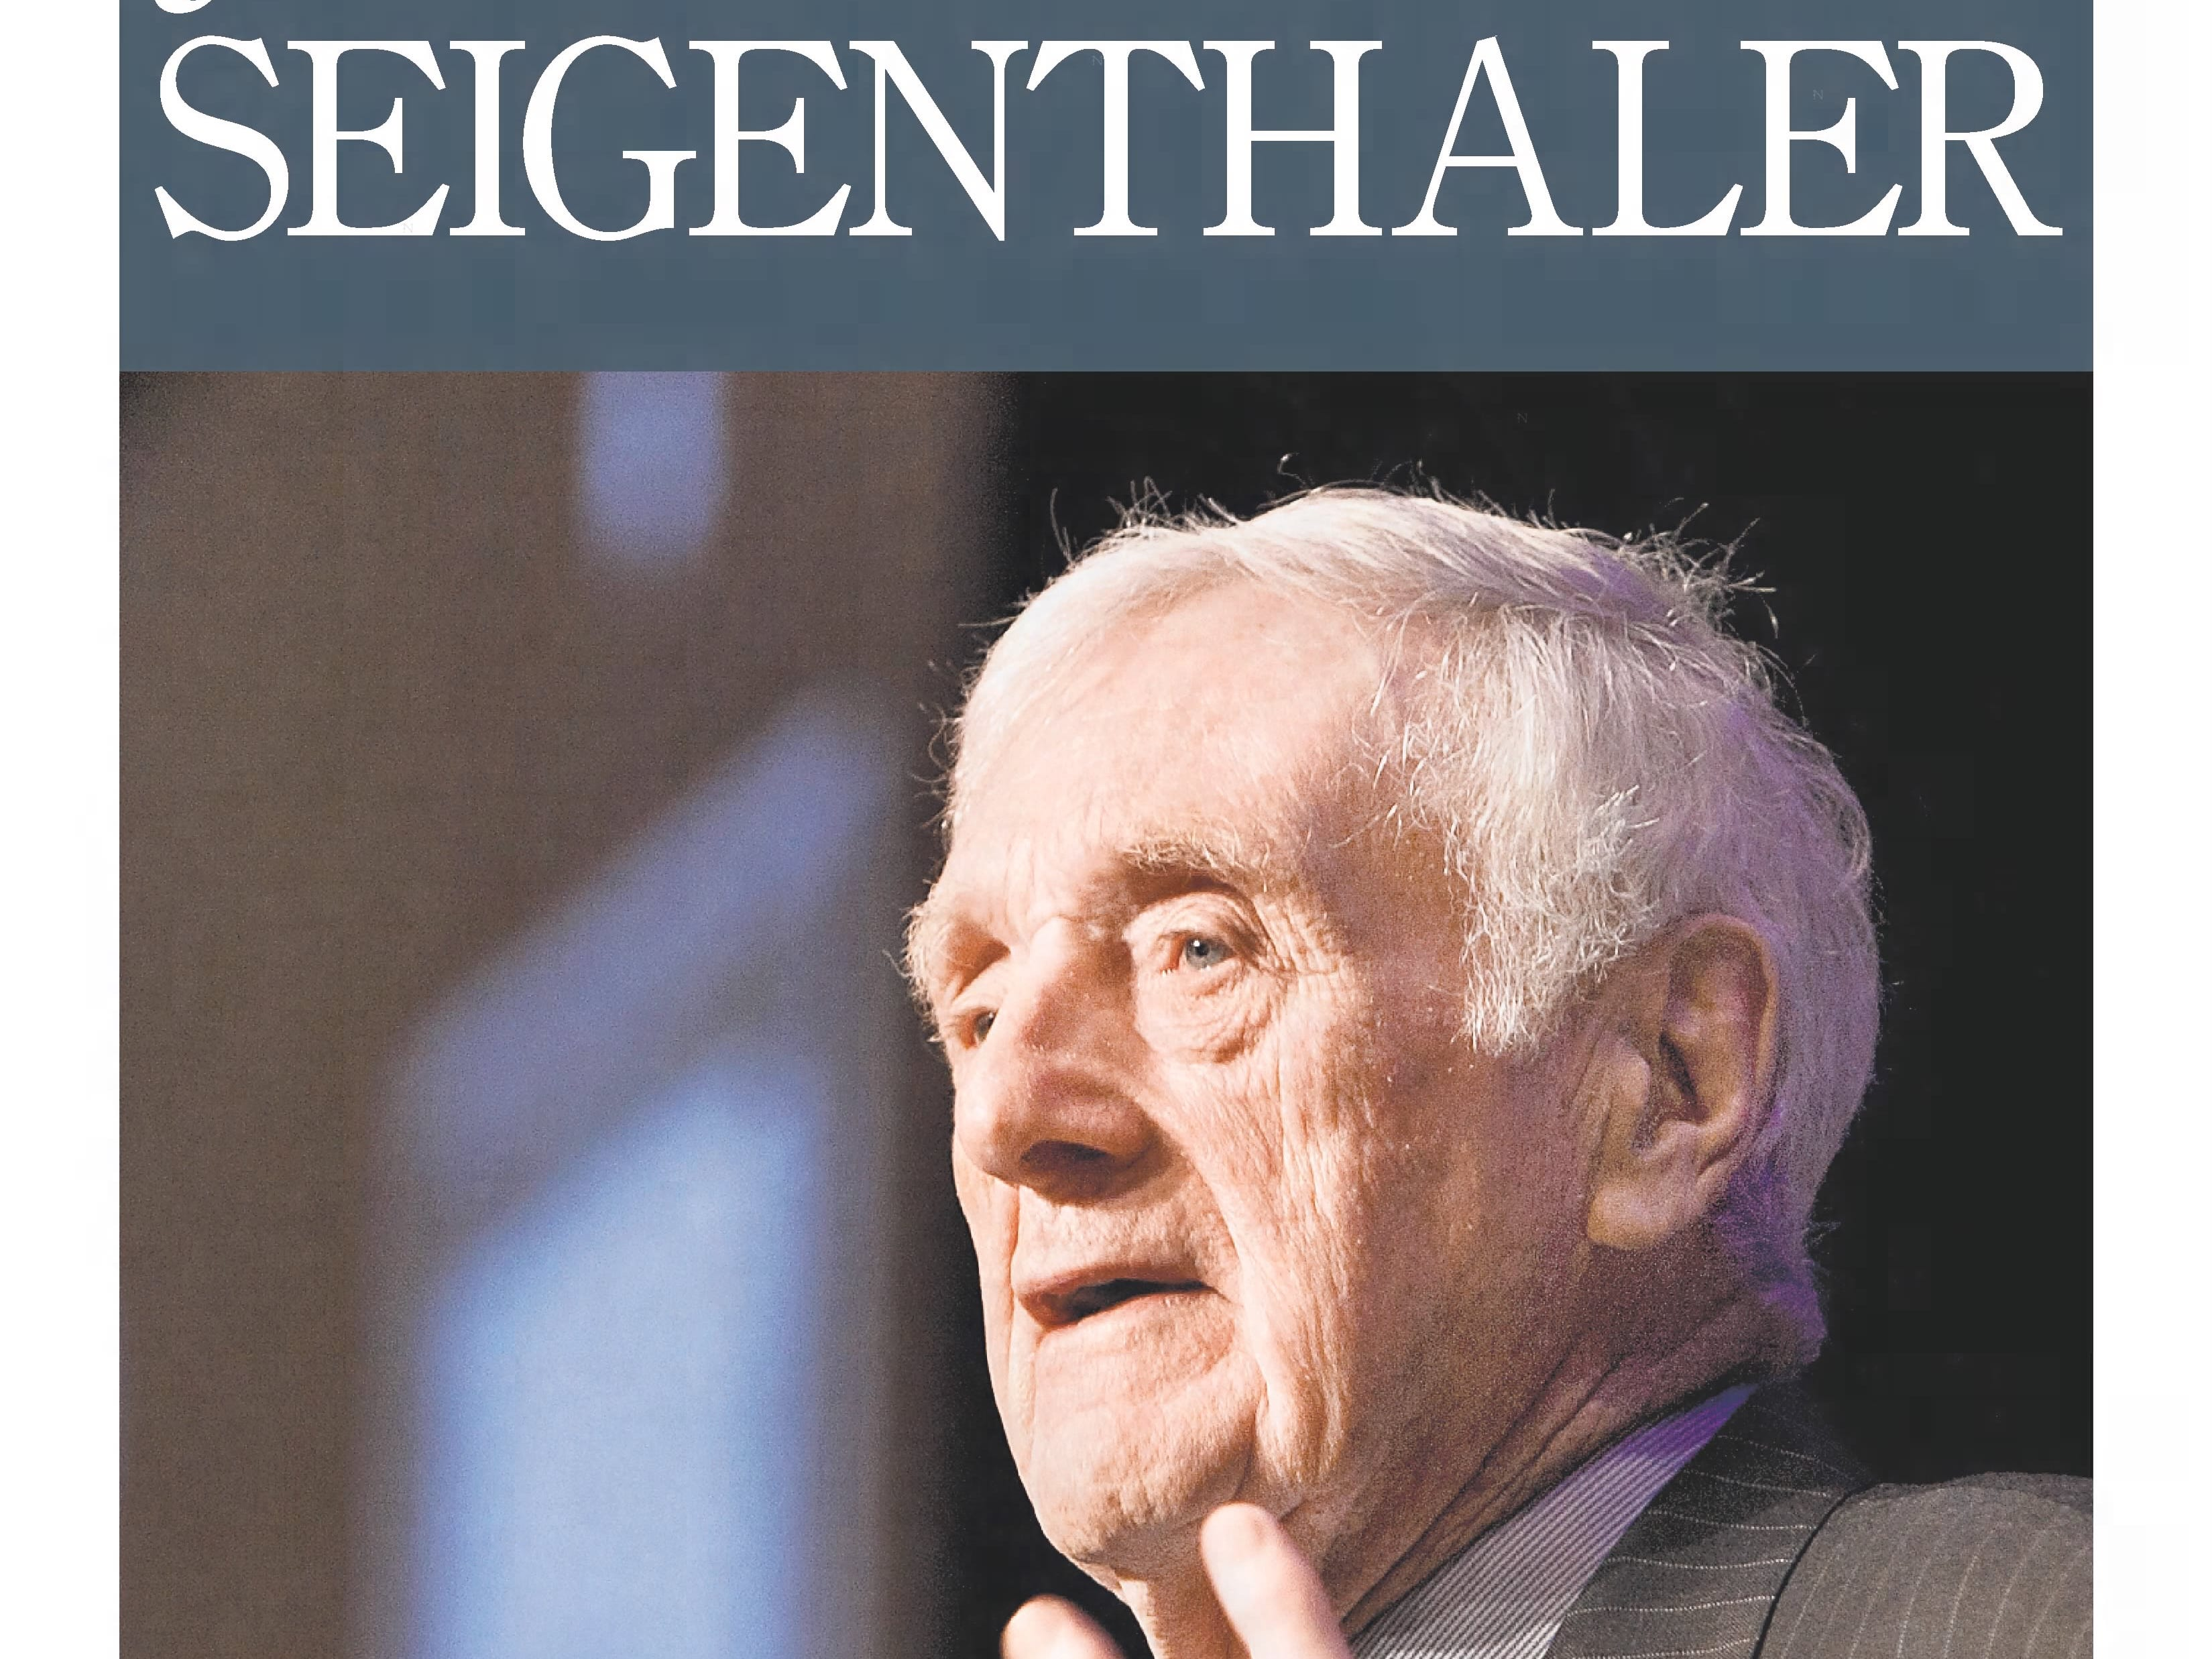 The front page of the July 12, 2014 of The Tennessean for the coverage of the death of John Seigenthaler.